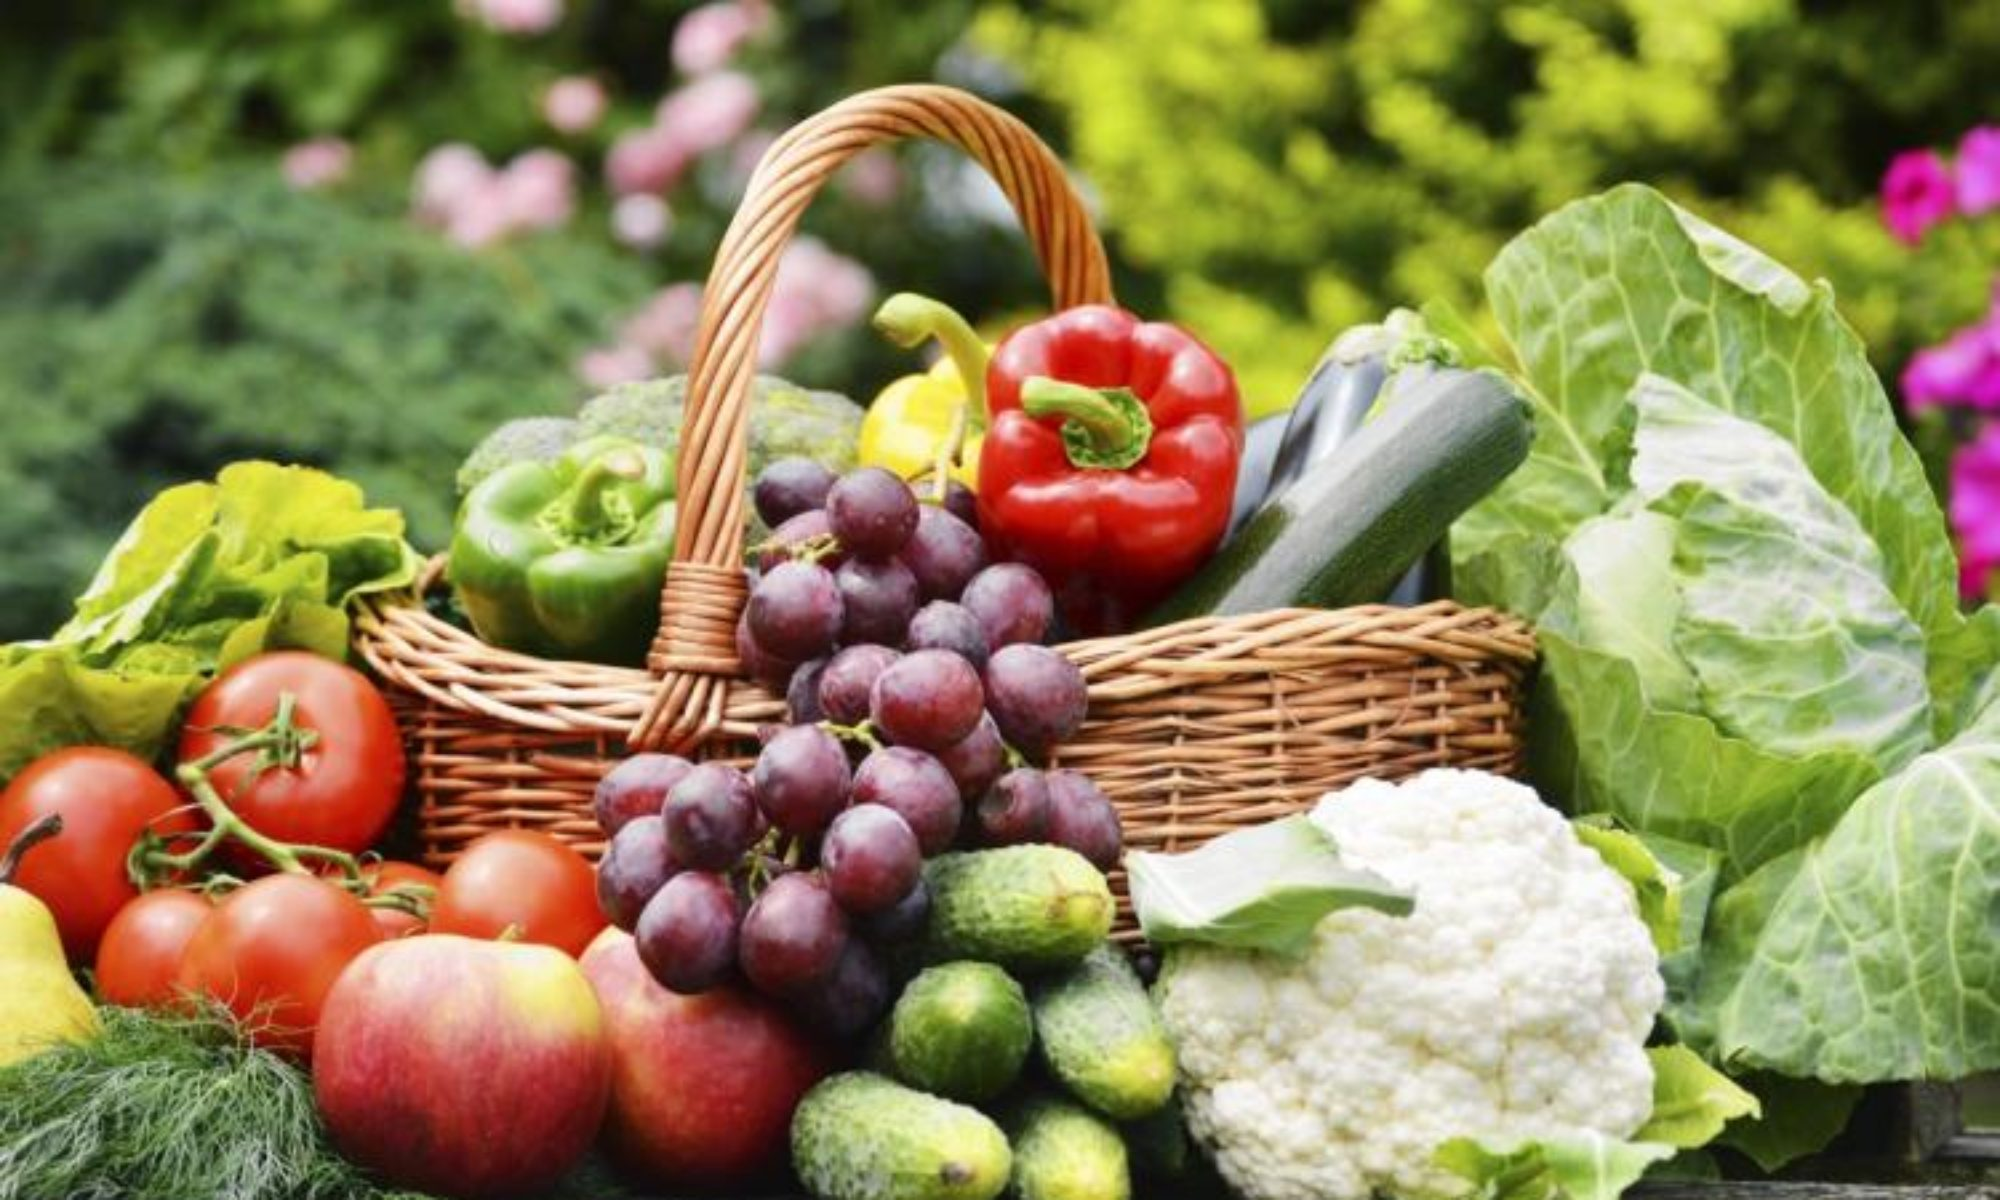 VISIT THE FRESH & LOCAL FARM OUTLET